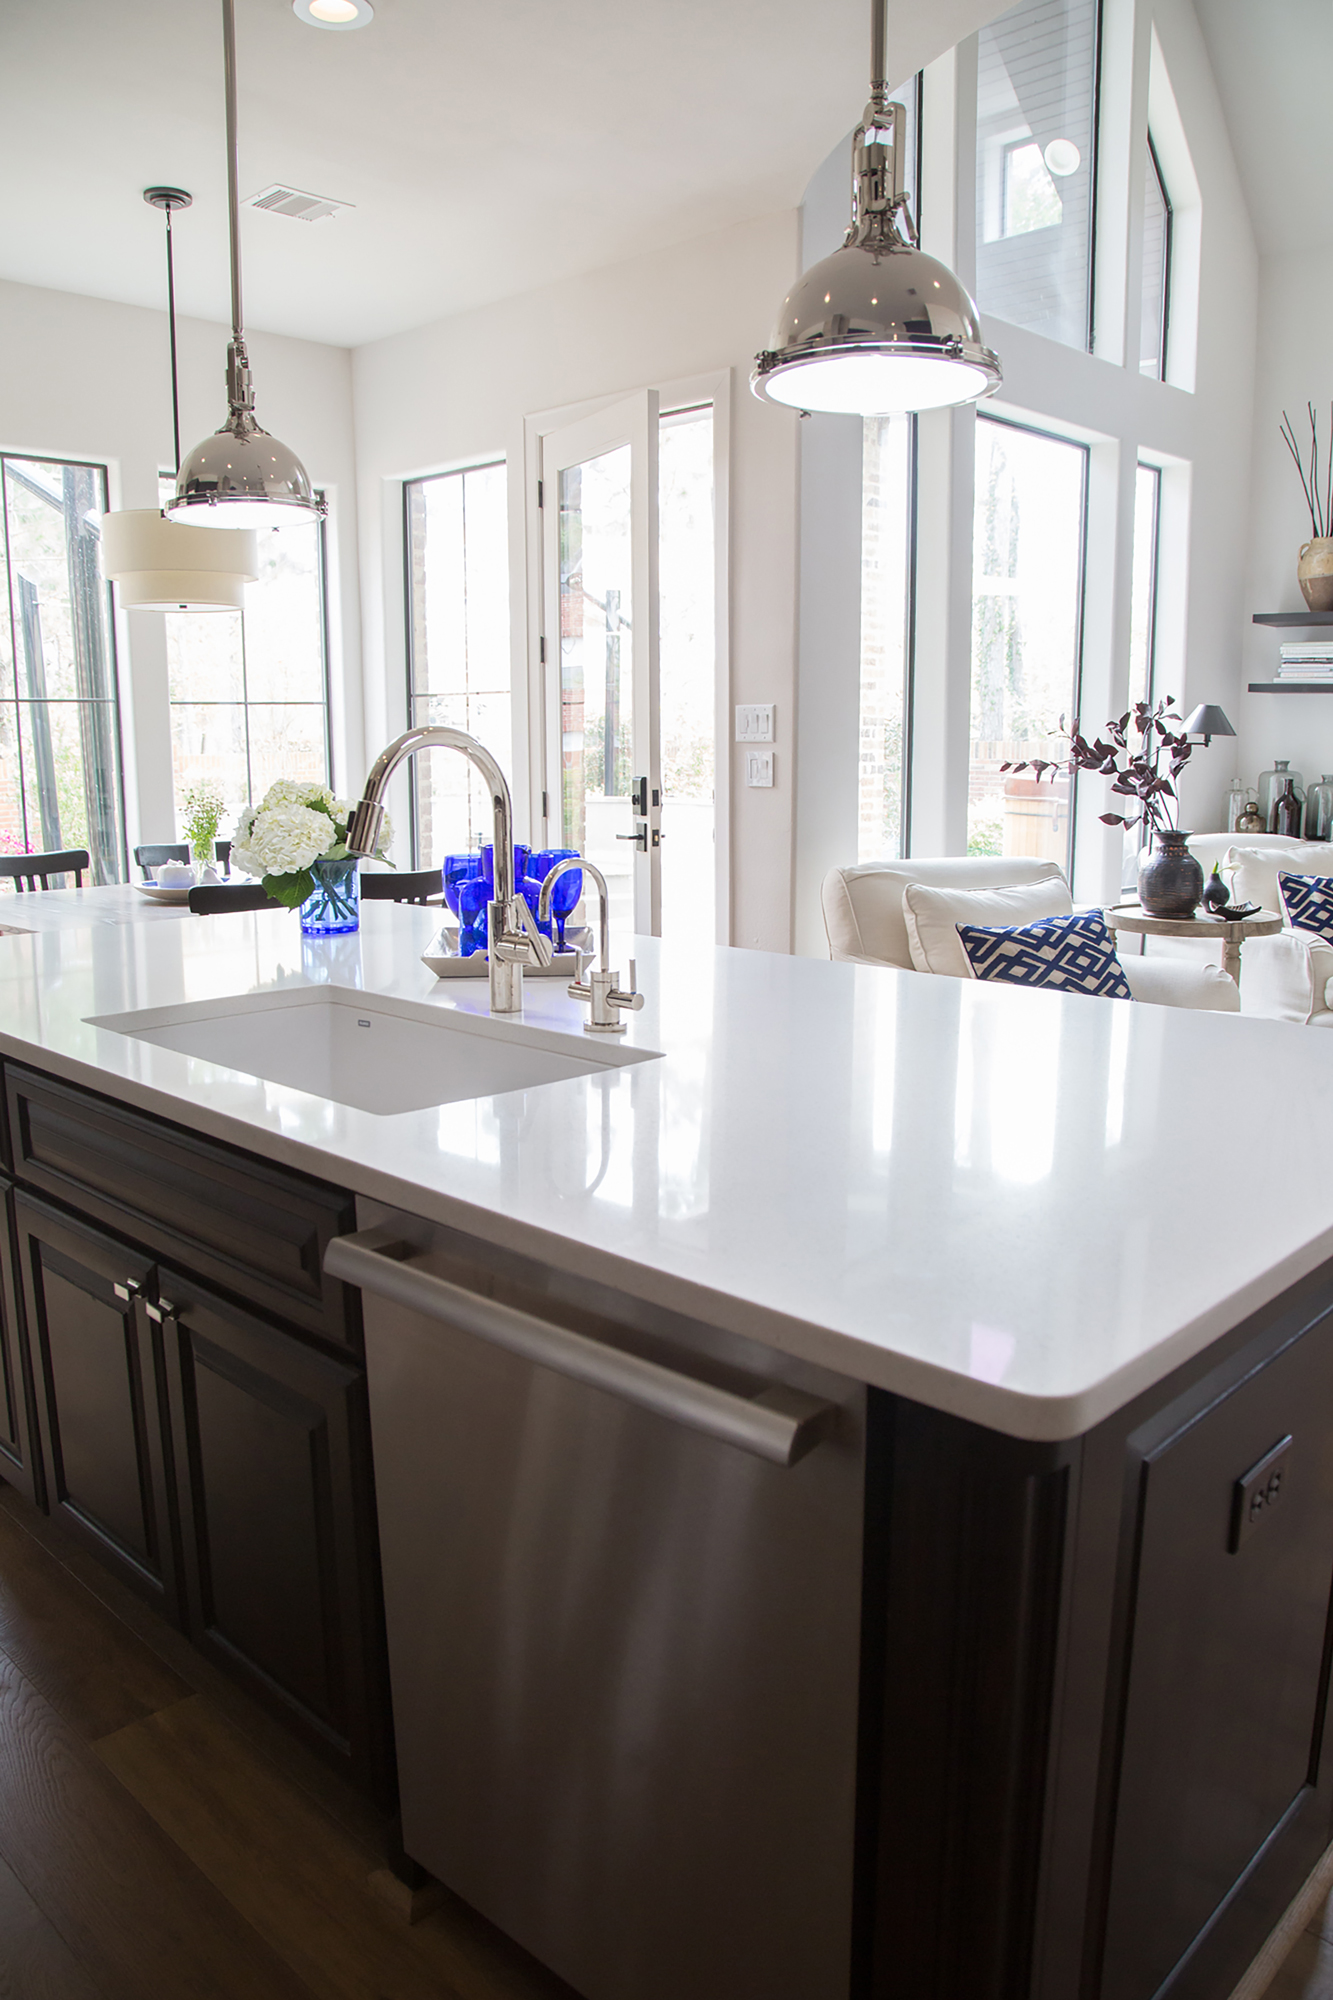 kitchen remodel; Island; sink; lighting; open floor plan | Interior Designer: Carla Aston / Photographer: Tori Aston